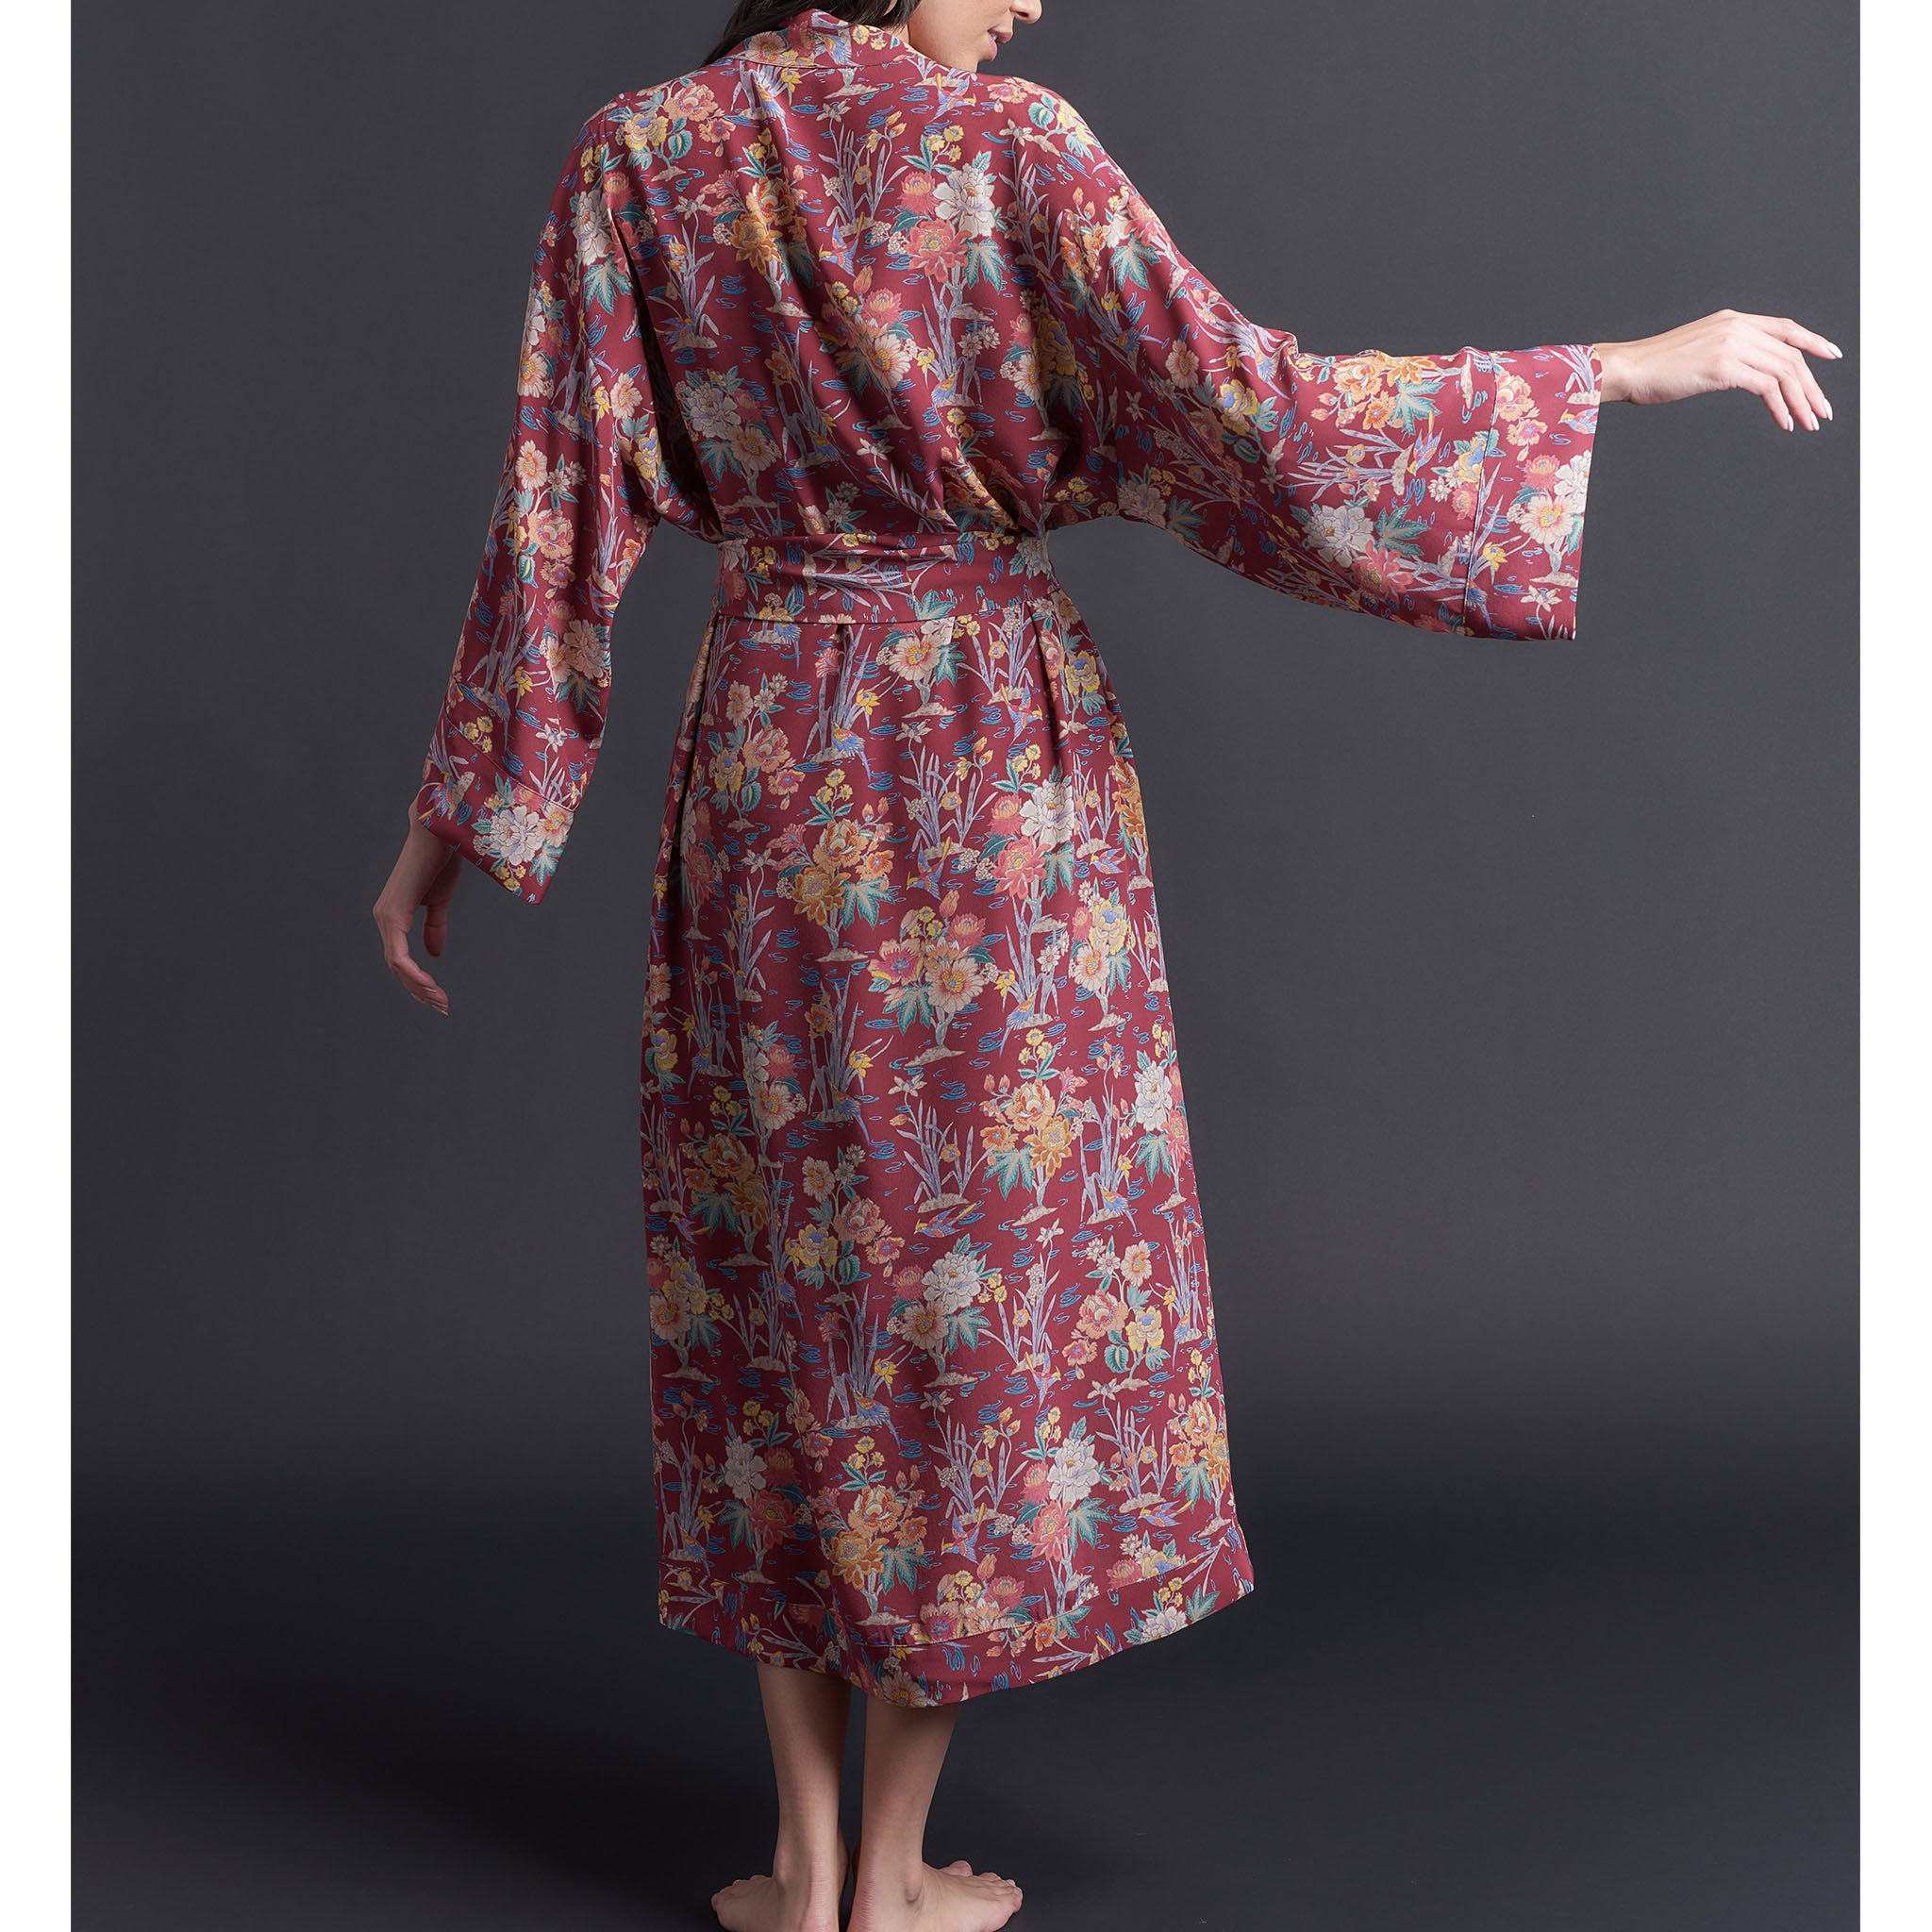 Asteria Kimono Robe in Liberty of London Red Lake Ada Print Silk Crepe De Chine